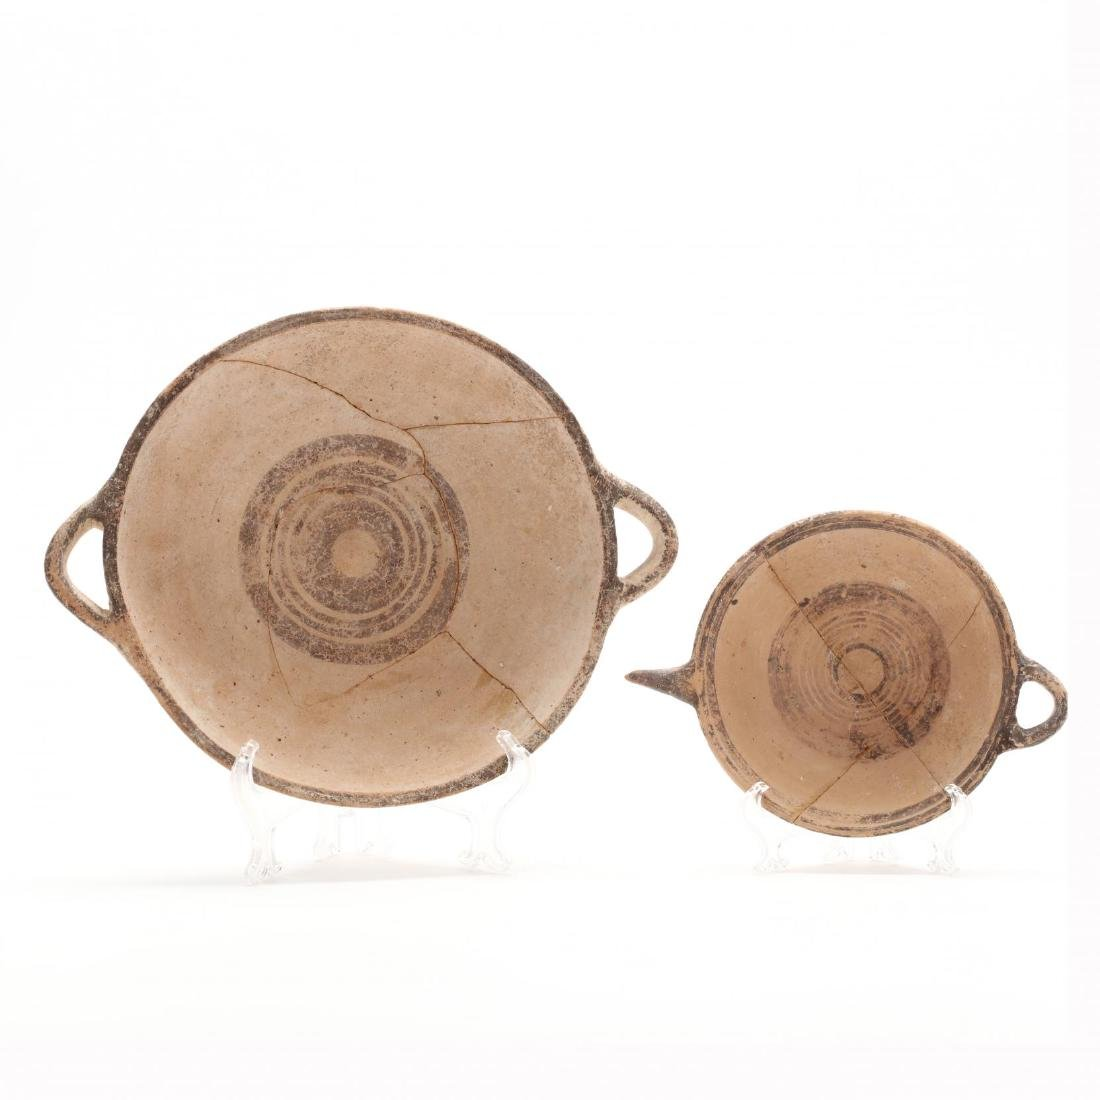 Two Cypro-Geometric Dishes